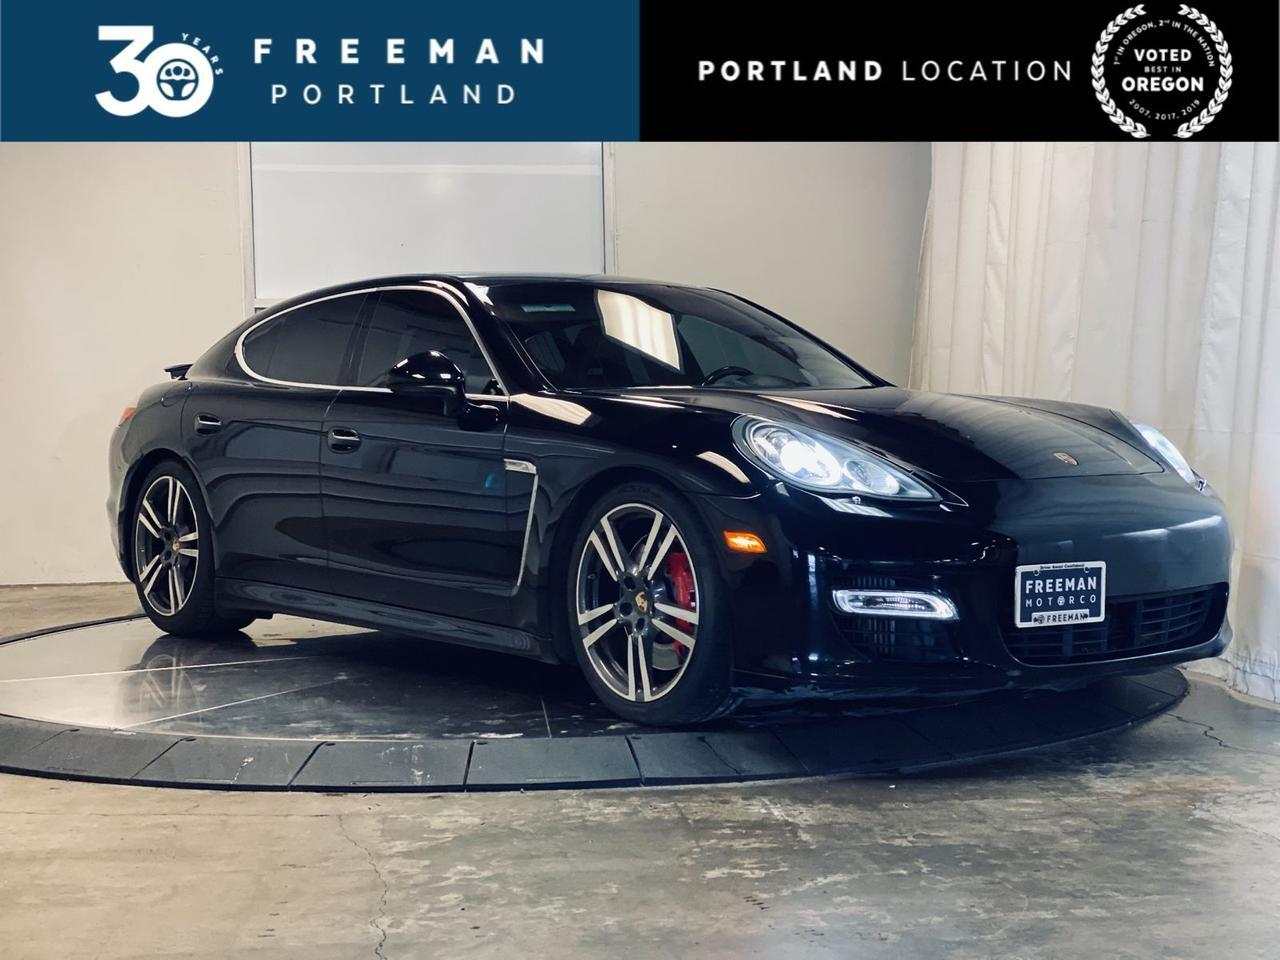 2012 Porsche Panamera Turbo Adaptive Cruise Sport Chrono Vented Seats Portland OR